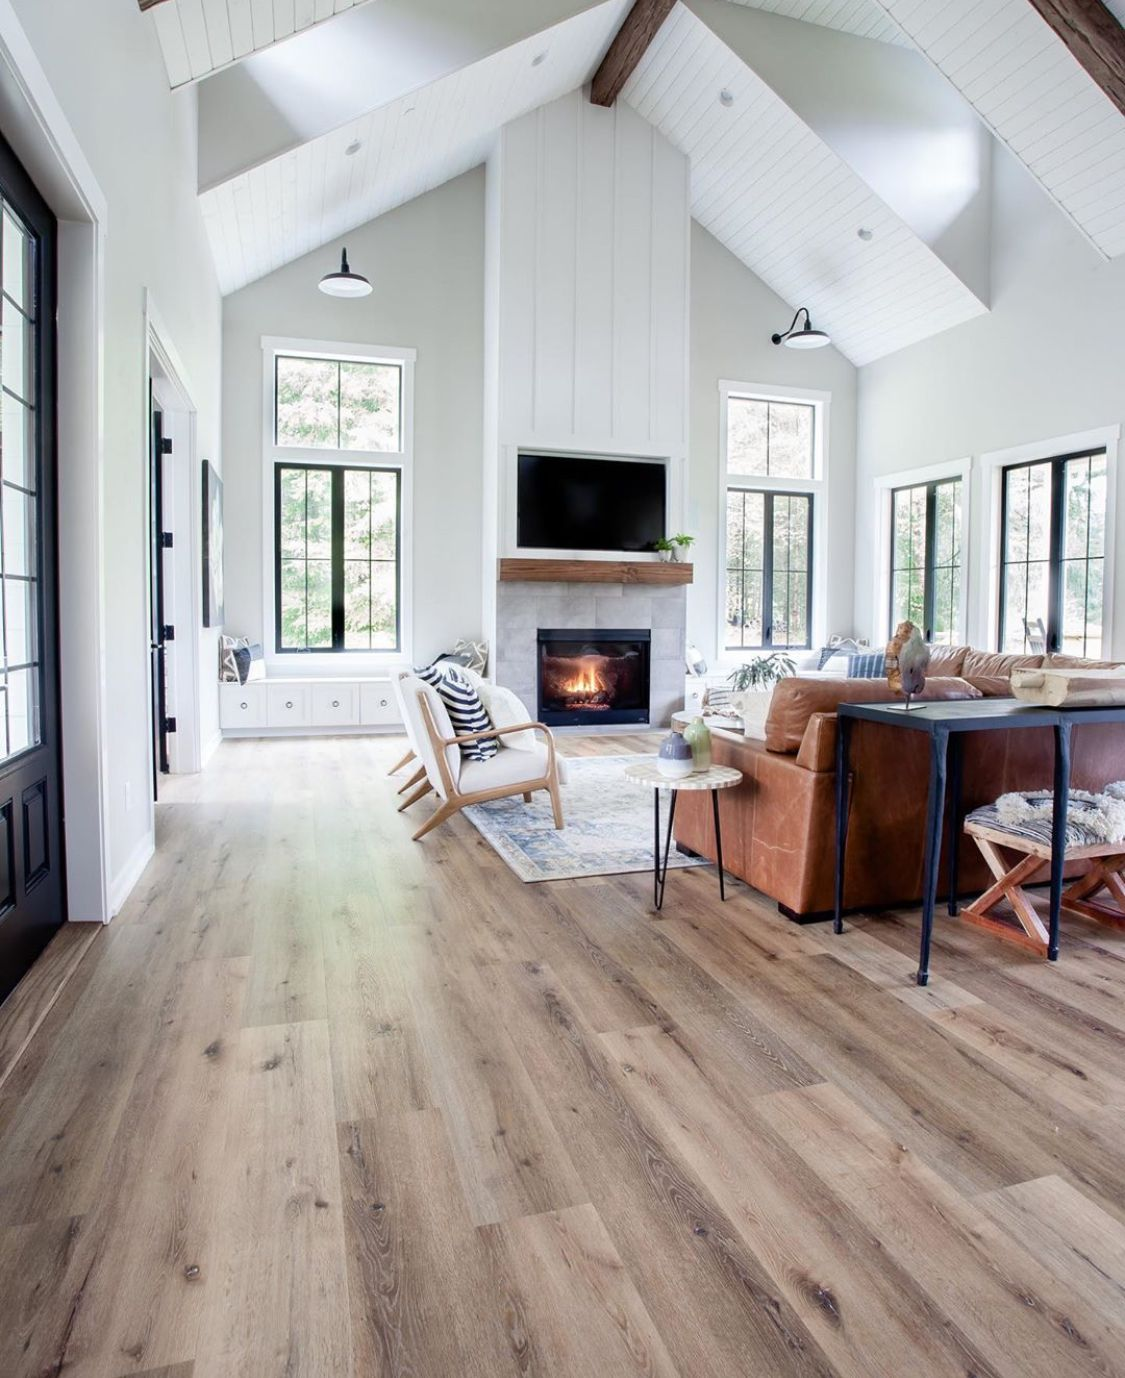 LVP Dutcheau Youngscombe  Modern farmhouse floors, Luxury vinyl